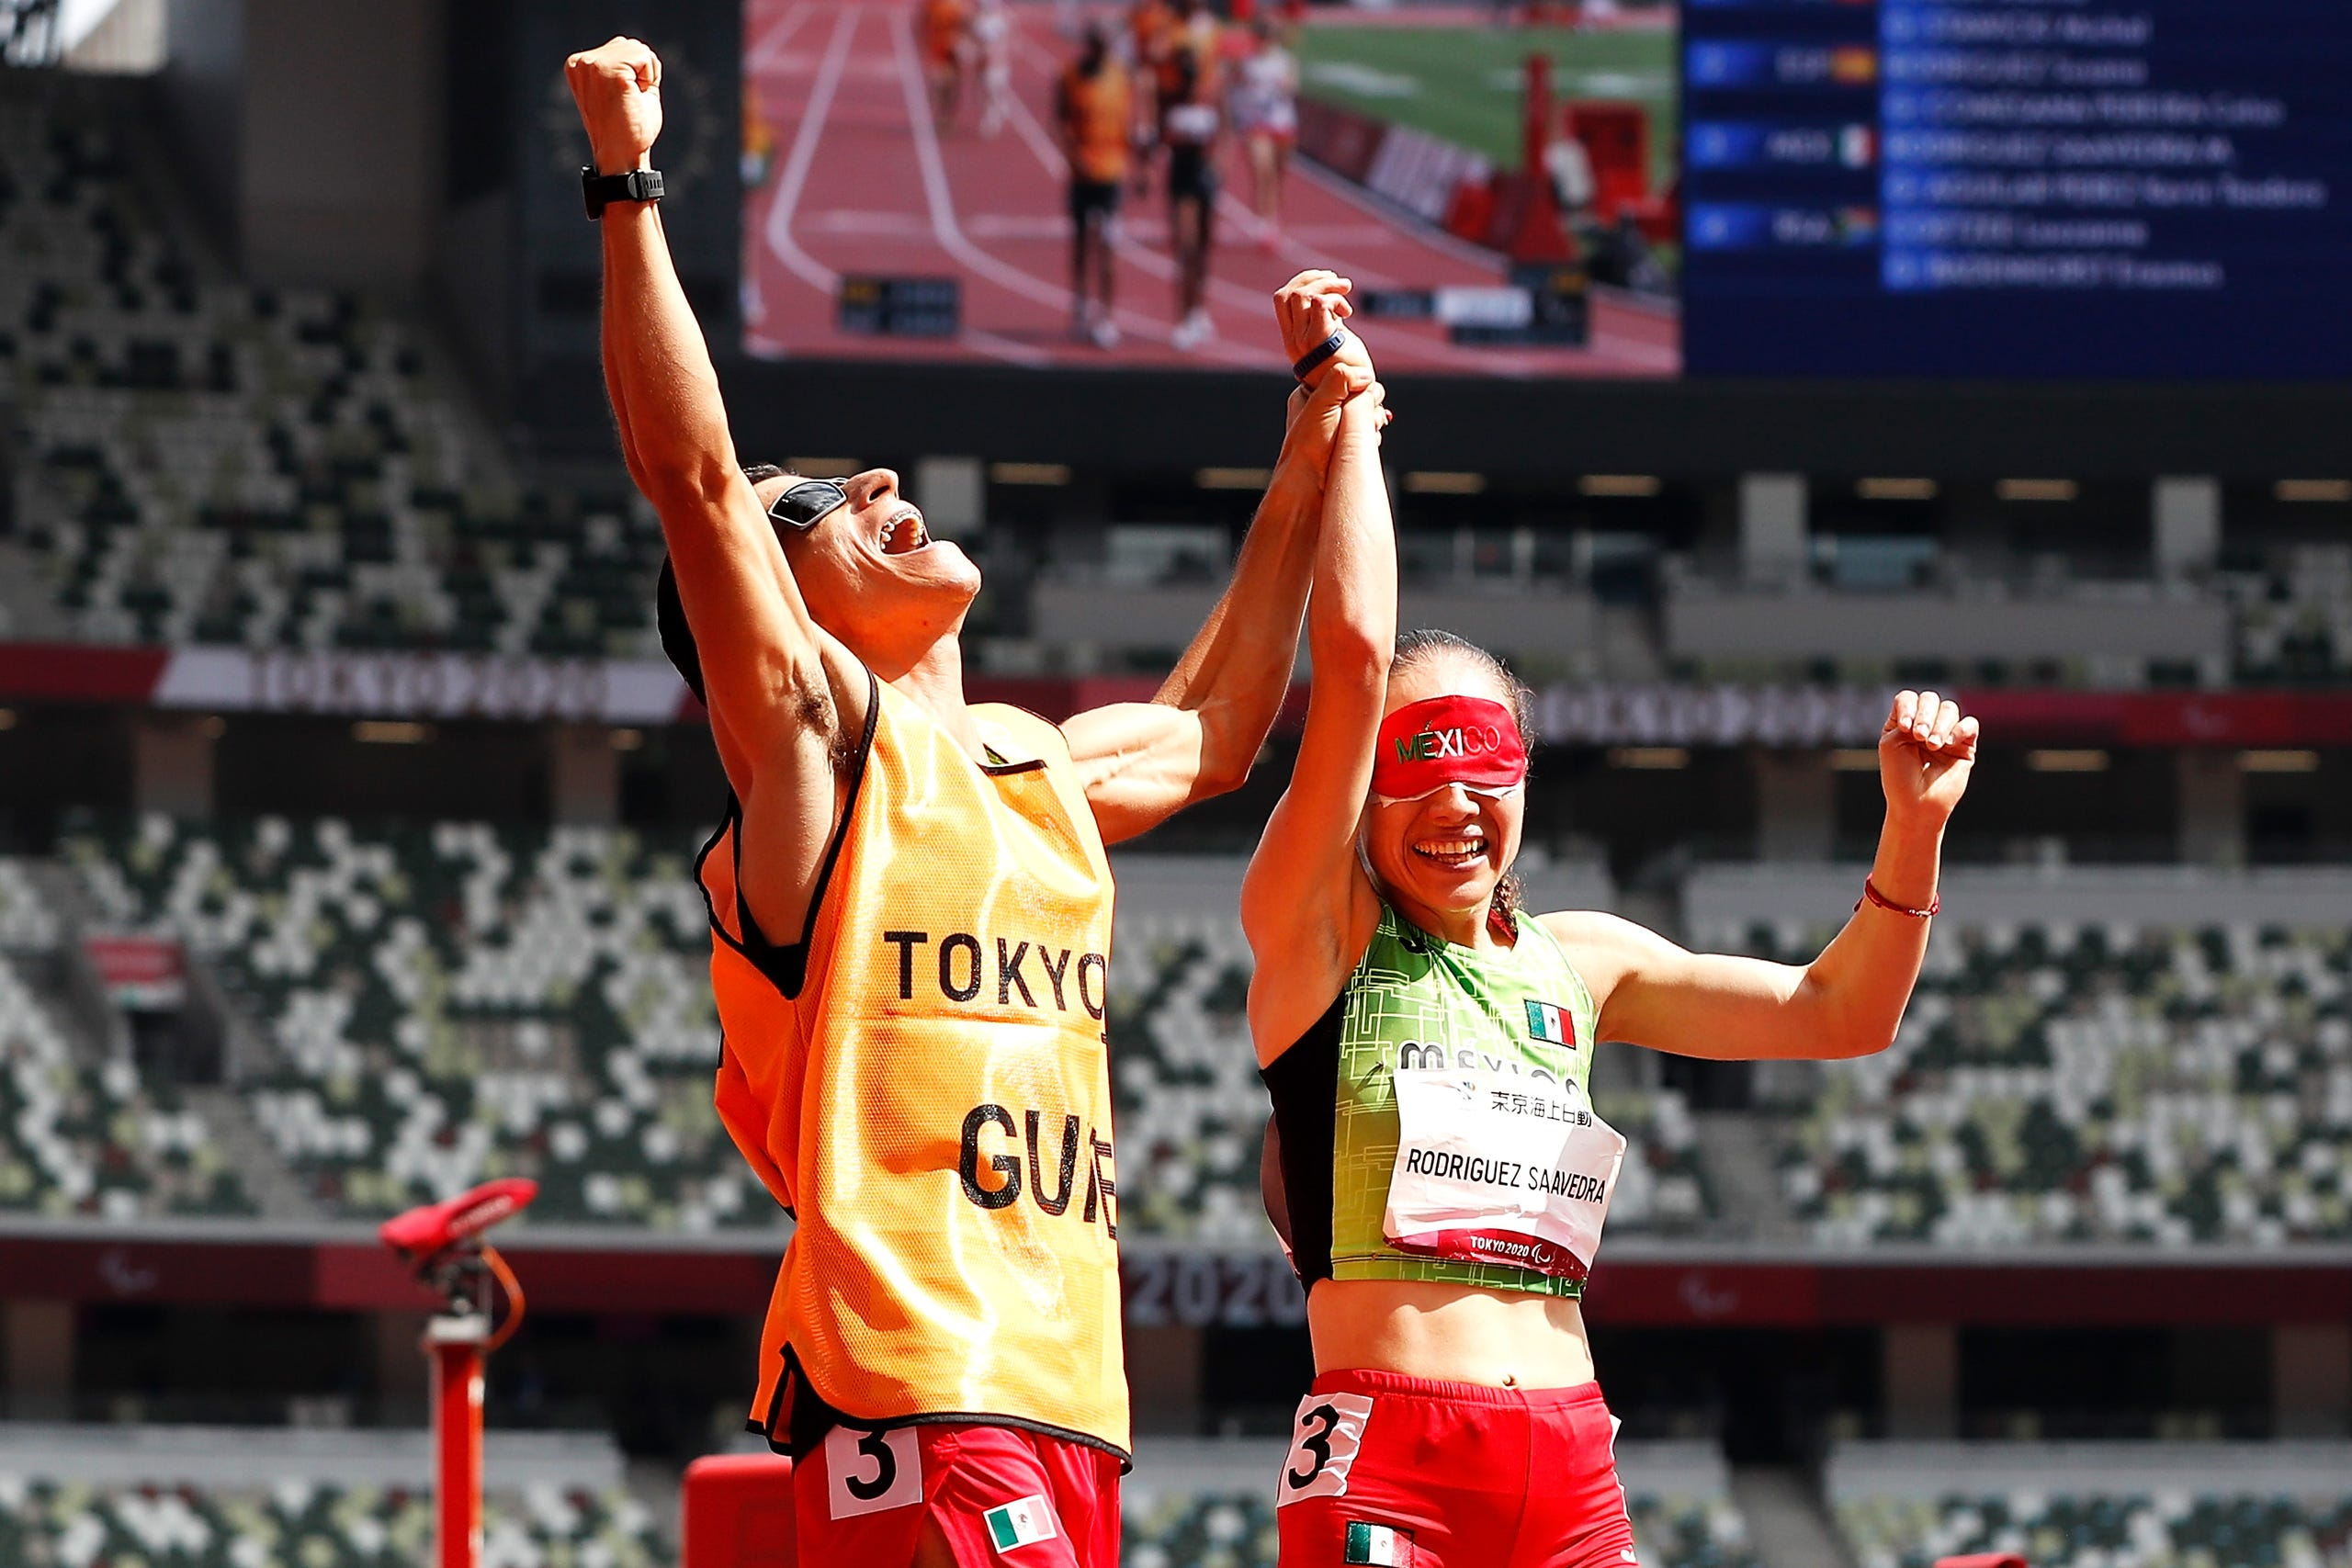 August 30, 2021: Monica Olivia Rodriguez Saavedra and guide Kevin Teodoro Aguilar Perez of Team Mexico react after winning the gold medal in the women's 1500m - T11 final on day 6 of the Tokyo 2020 Paralympic Games at Olympic Stadium in Tokyo, Japan.